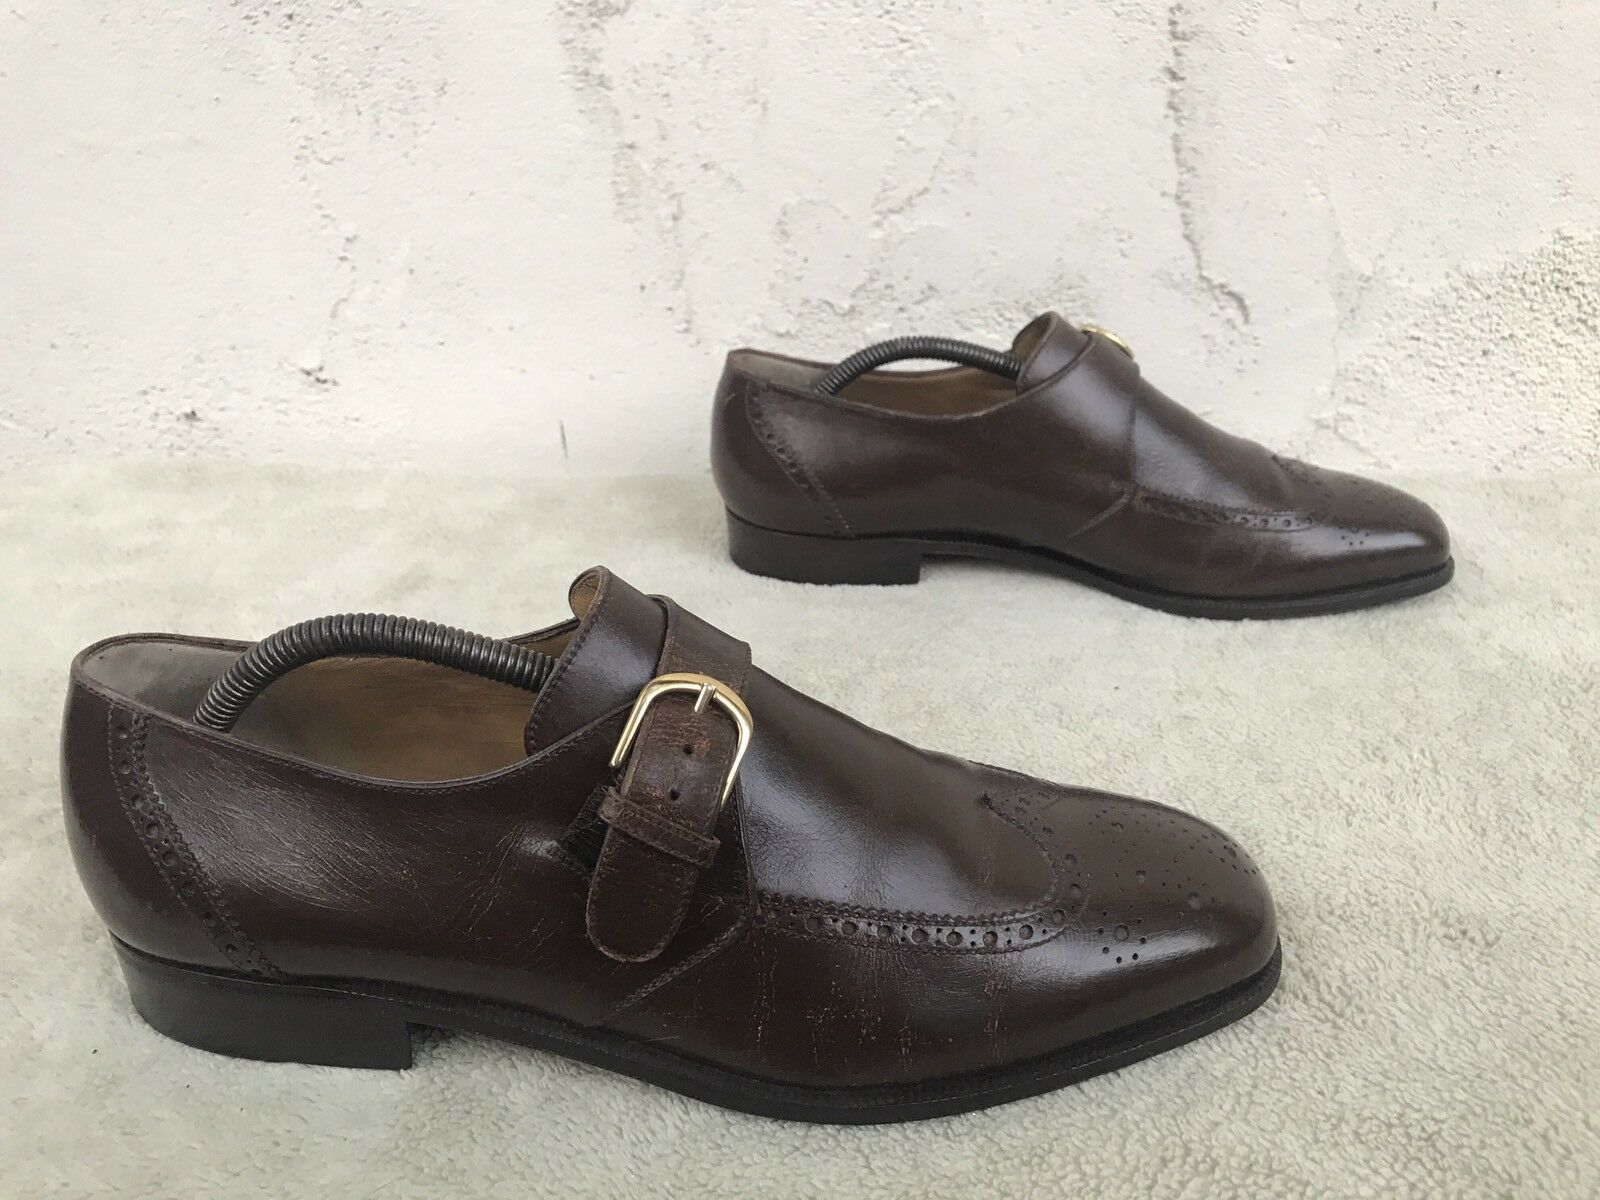 RARE EUC Bally Vintage Wingtip Monk Washed Brown Monk Wingtip Strap Pelle Shoes Size   8.5 3d8219